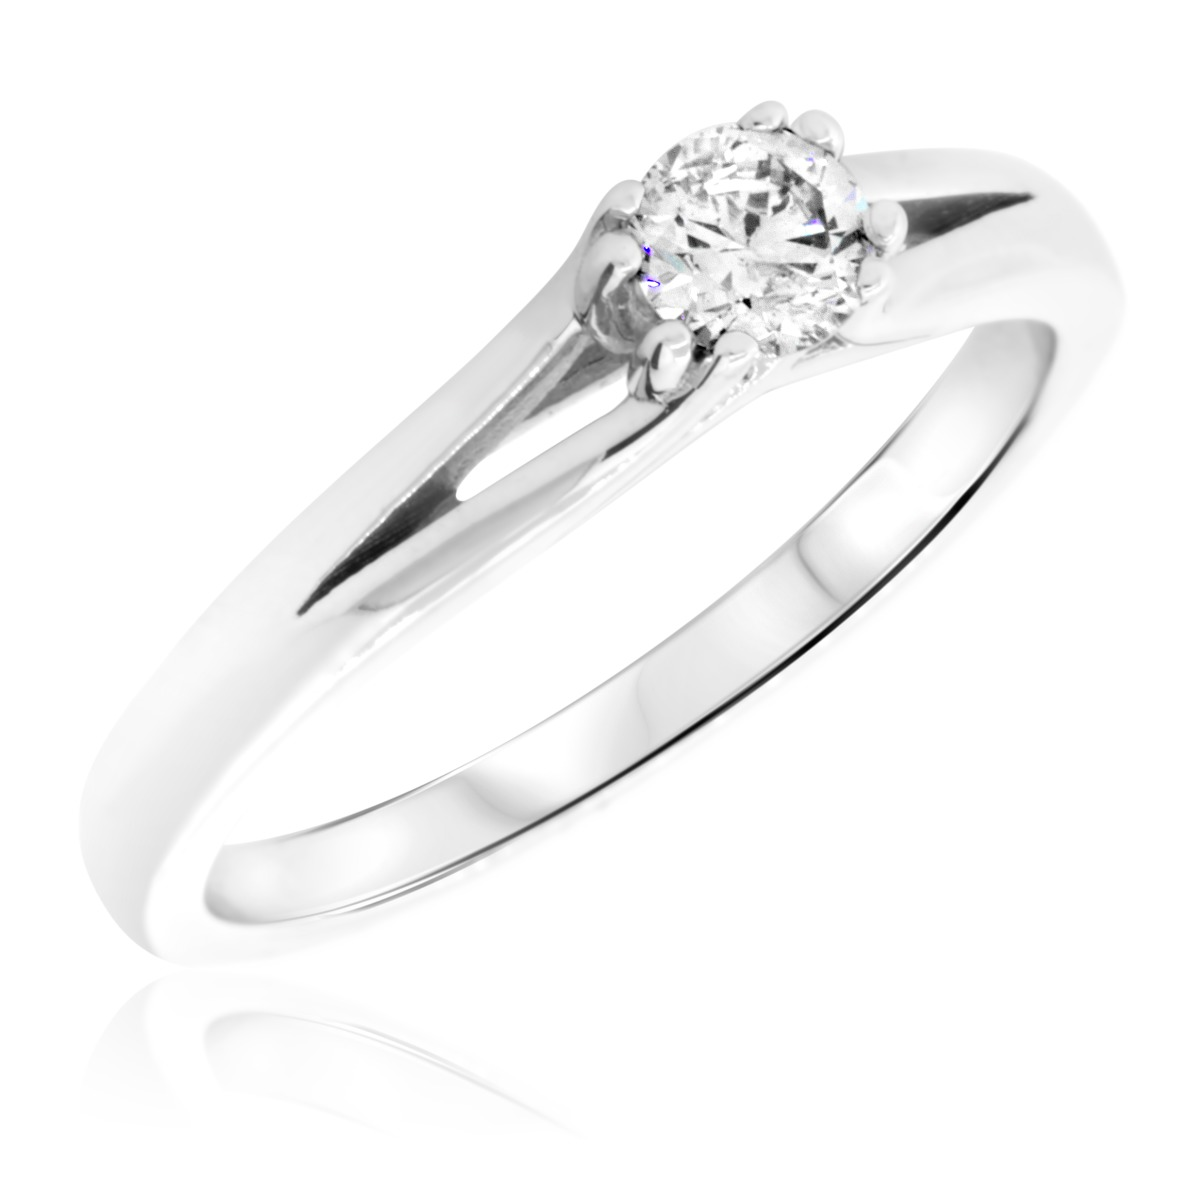 1/4 Carat T.W. Round Cut Diamond Ladies Engagement Ring 14K White Gold